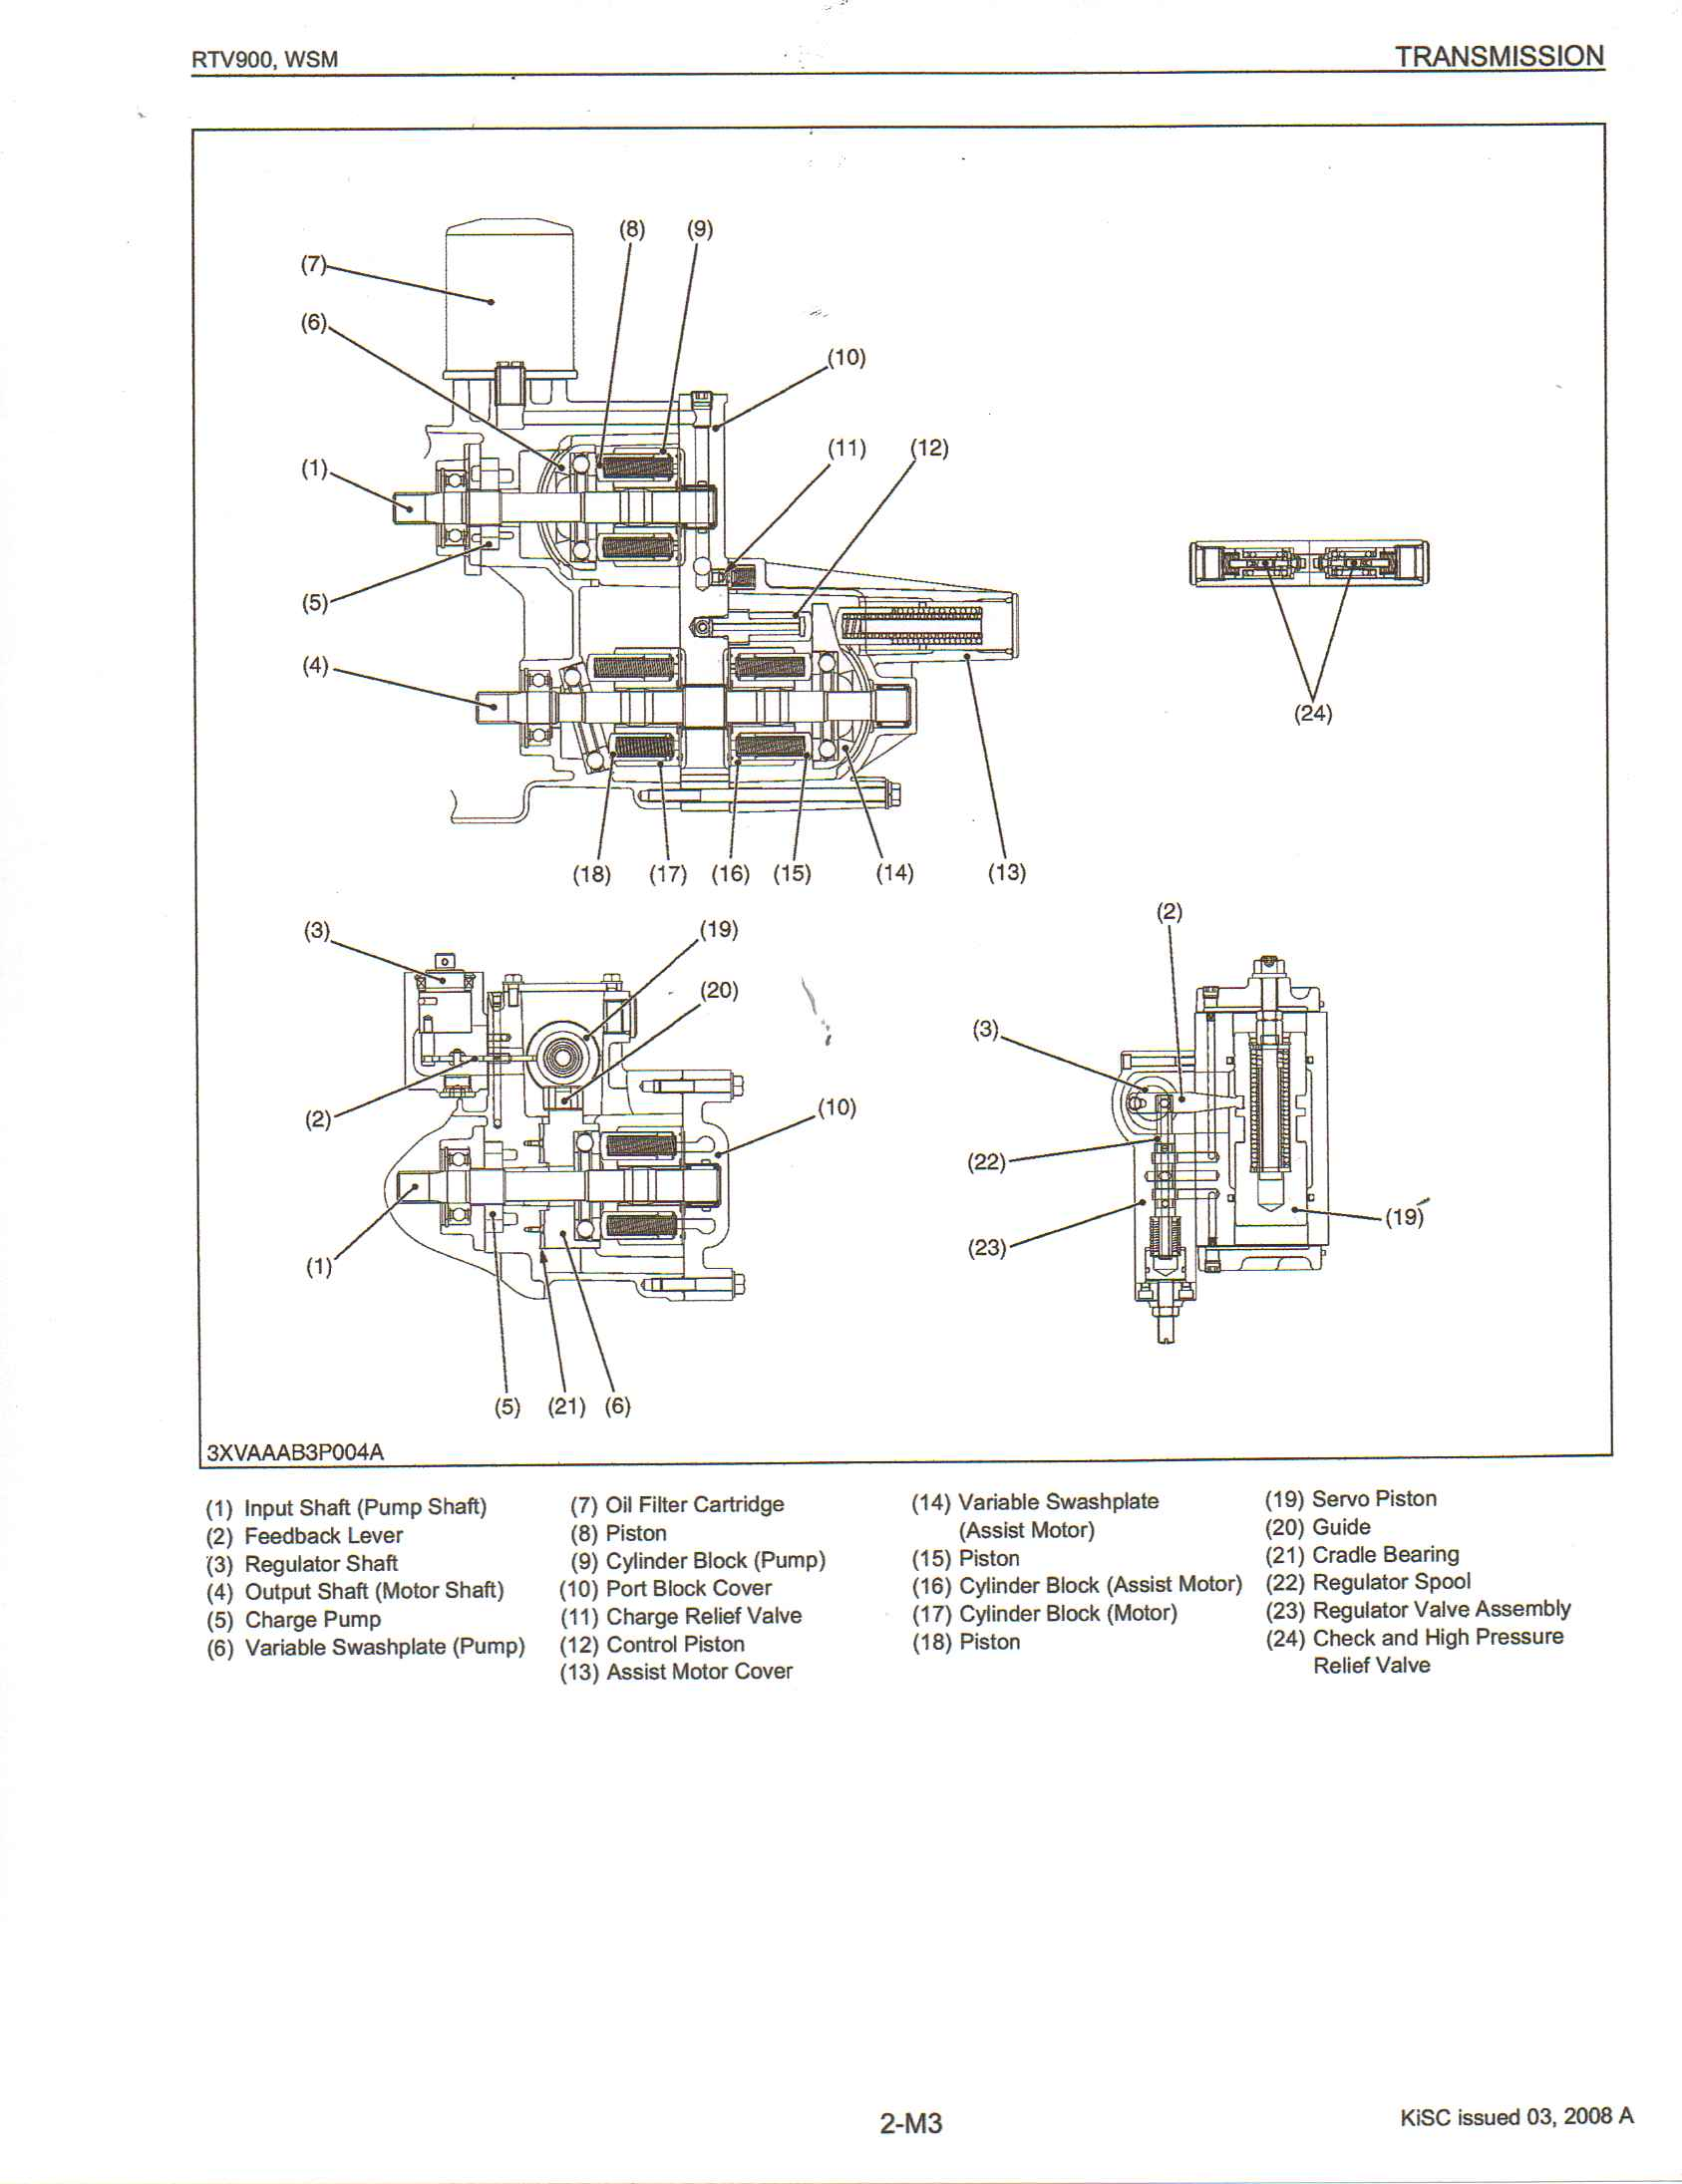 kubota rtv 900 transmission parts diagram kubota wiring. Black Bedroom Furniture Sets. Home Design Ideas